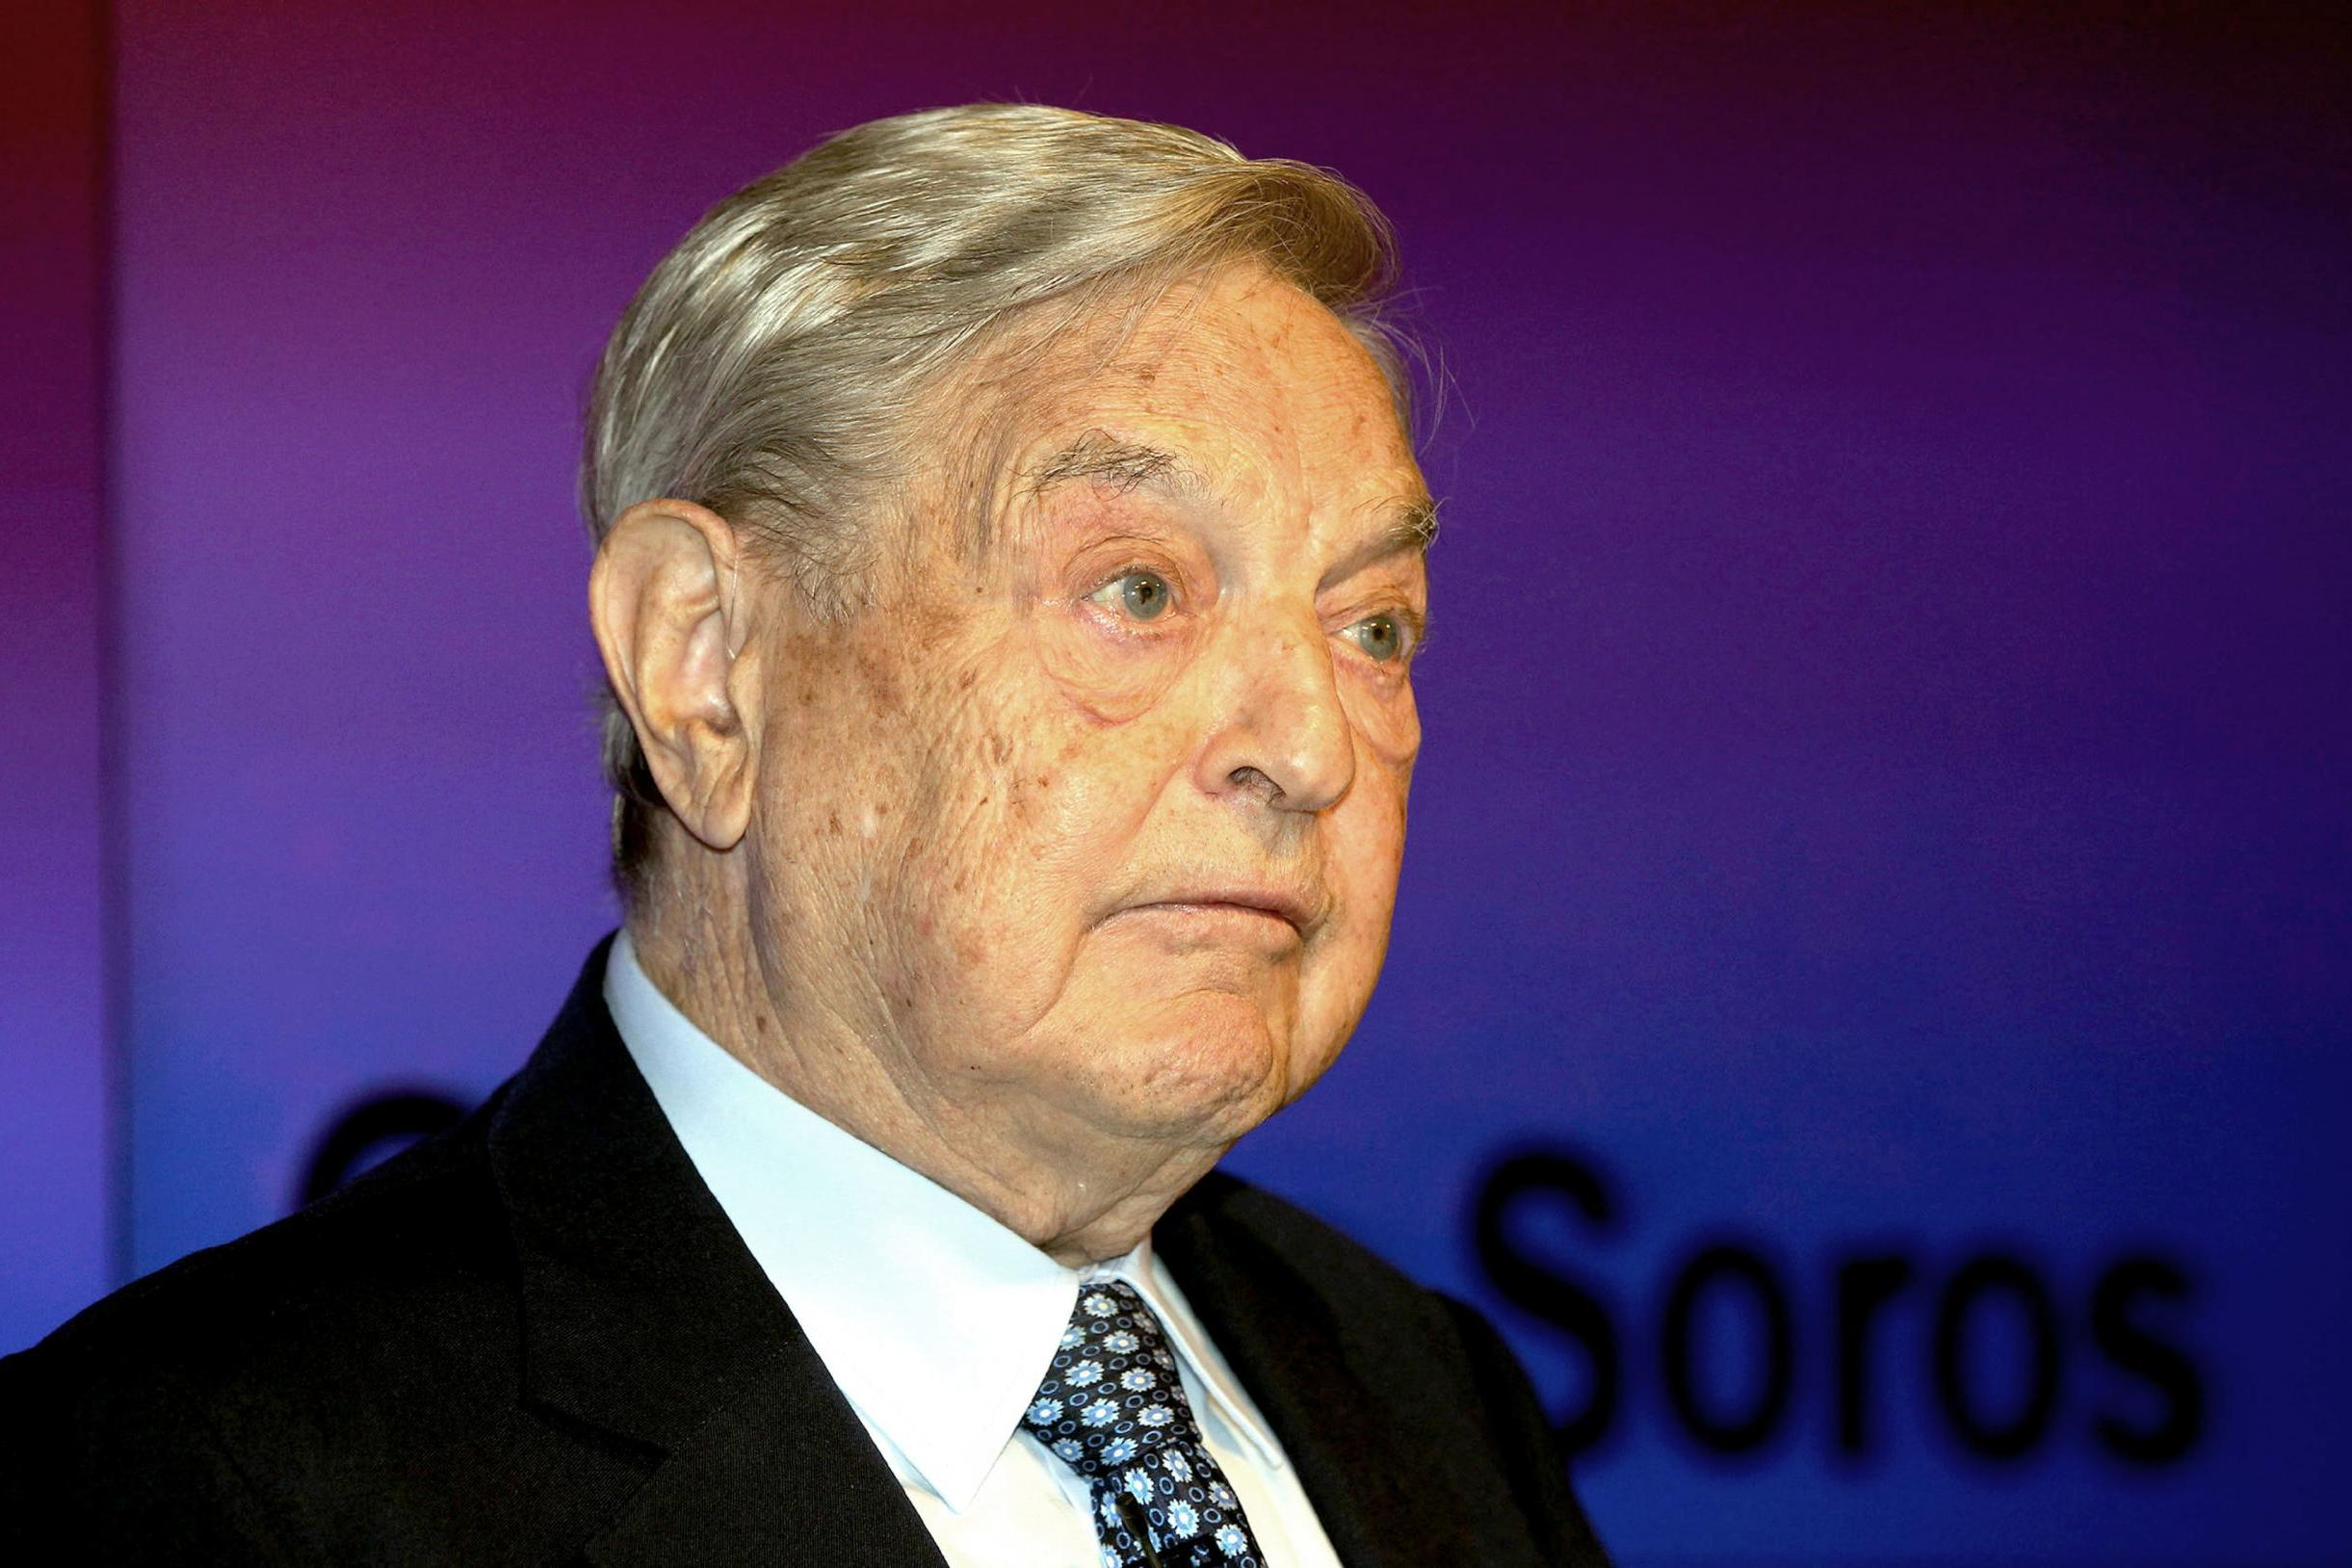 Sheryl Sandberg 'asked Facebook staff to research George Soros' after his attack on tech companies